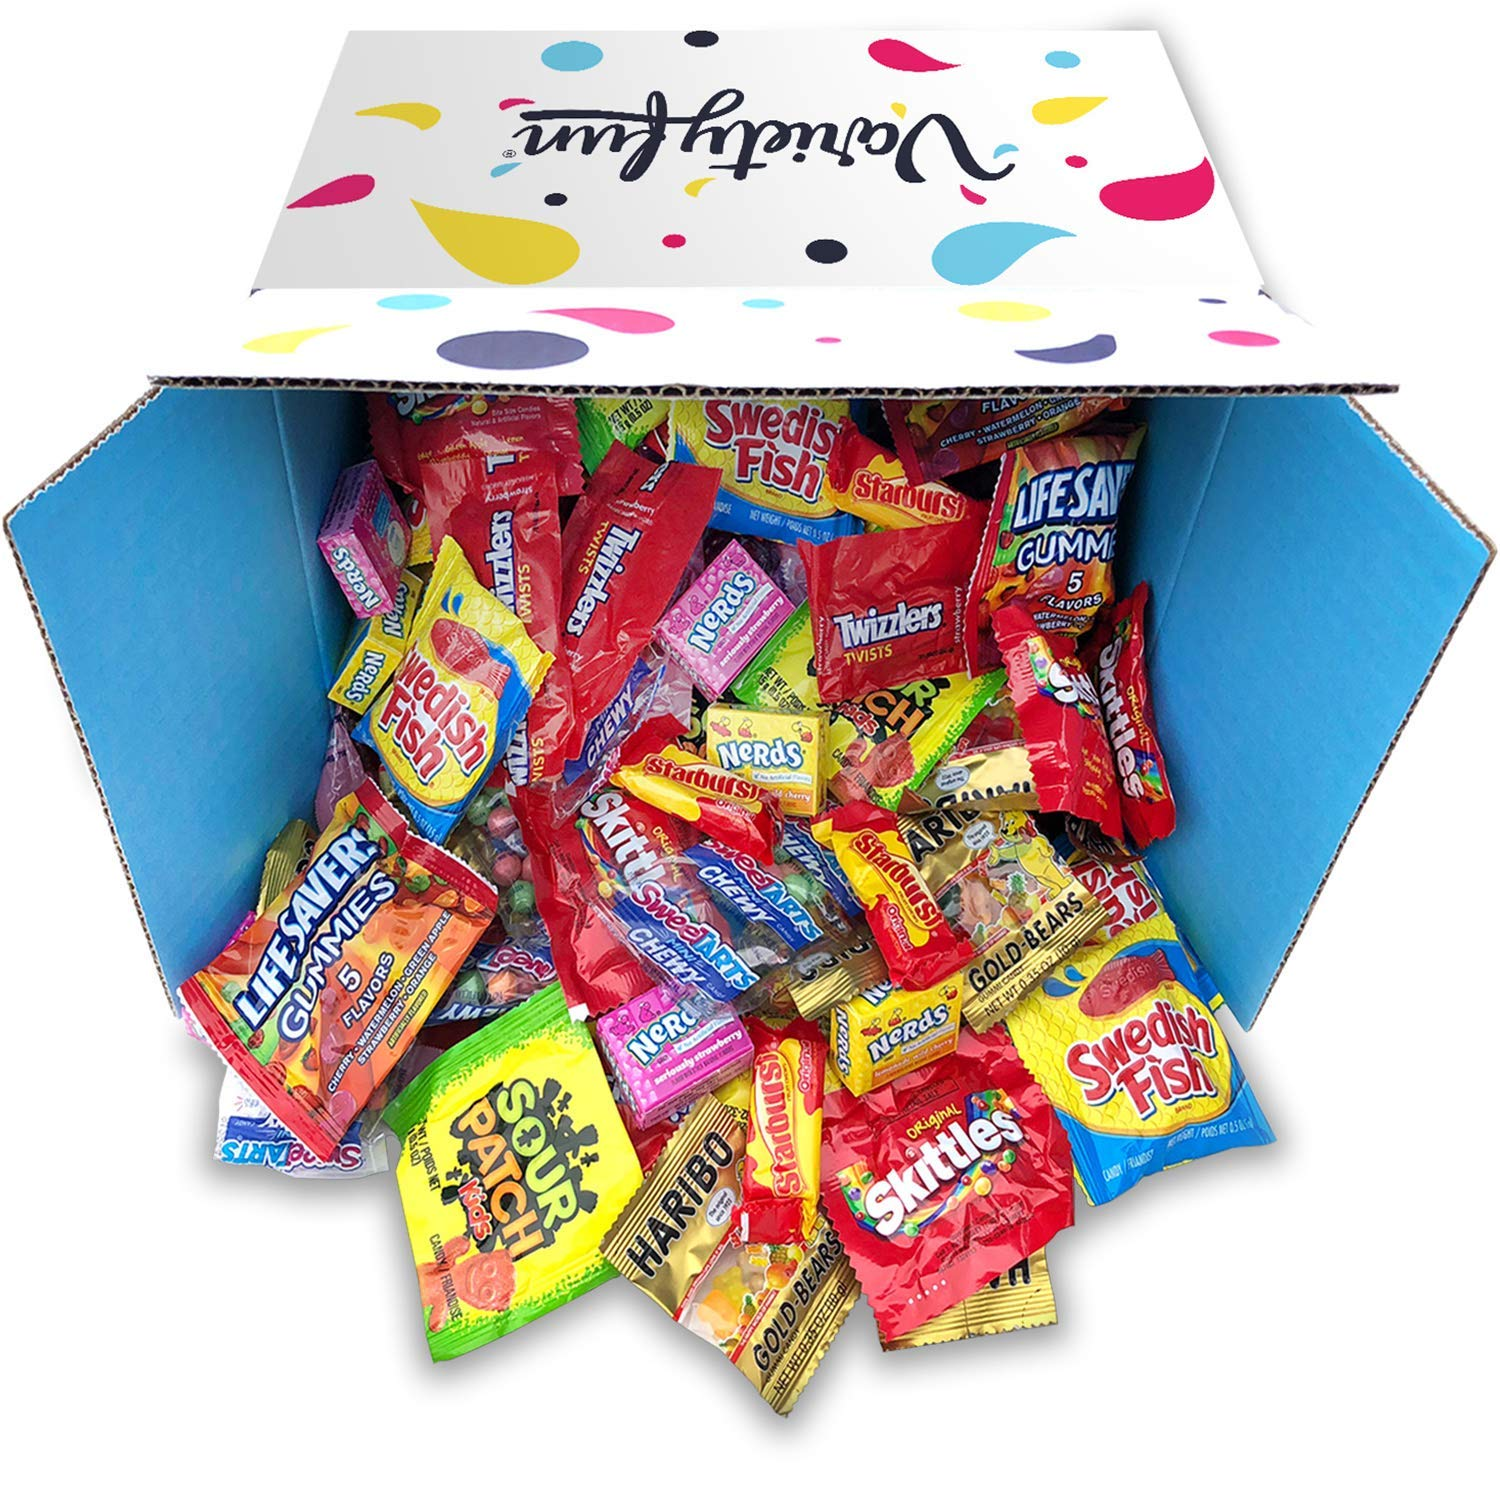 Candy Bulk Variety Pack Mixed Assortment by Variety Fun (288 oz) by Custom Varietea